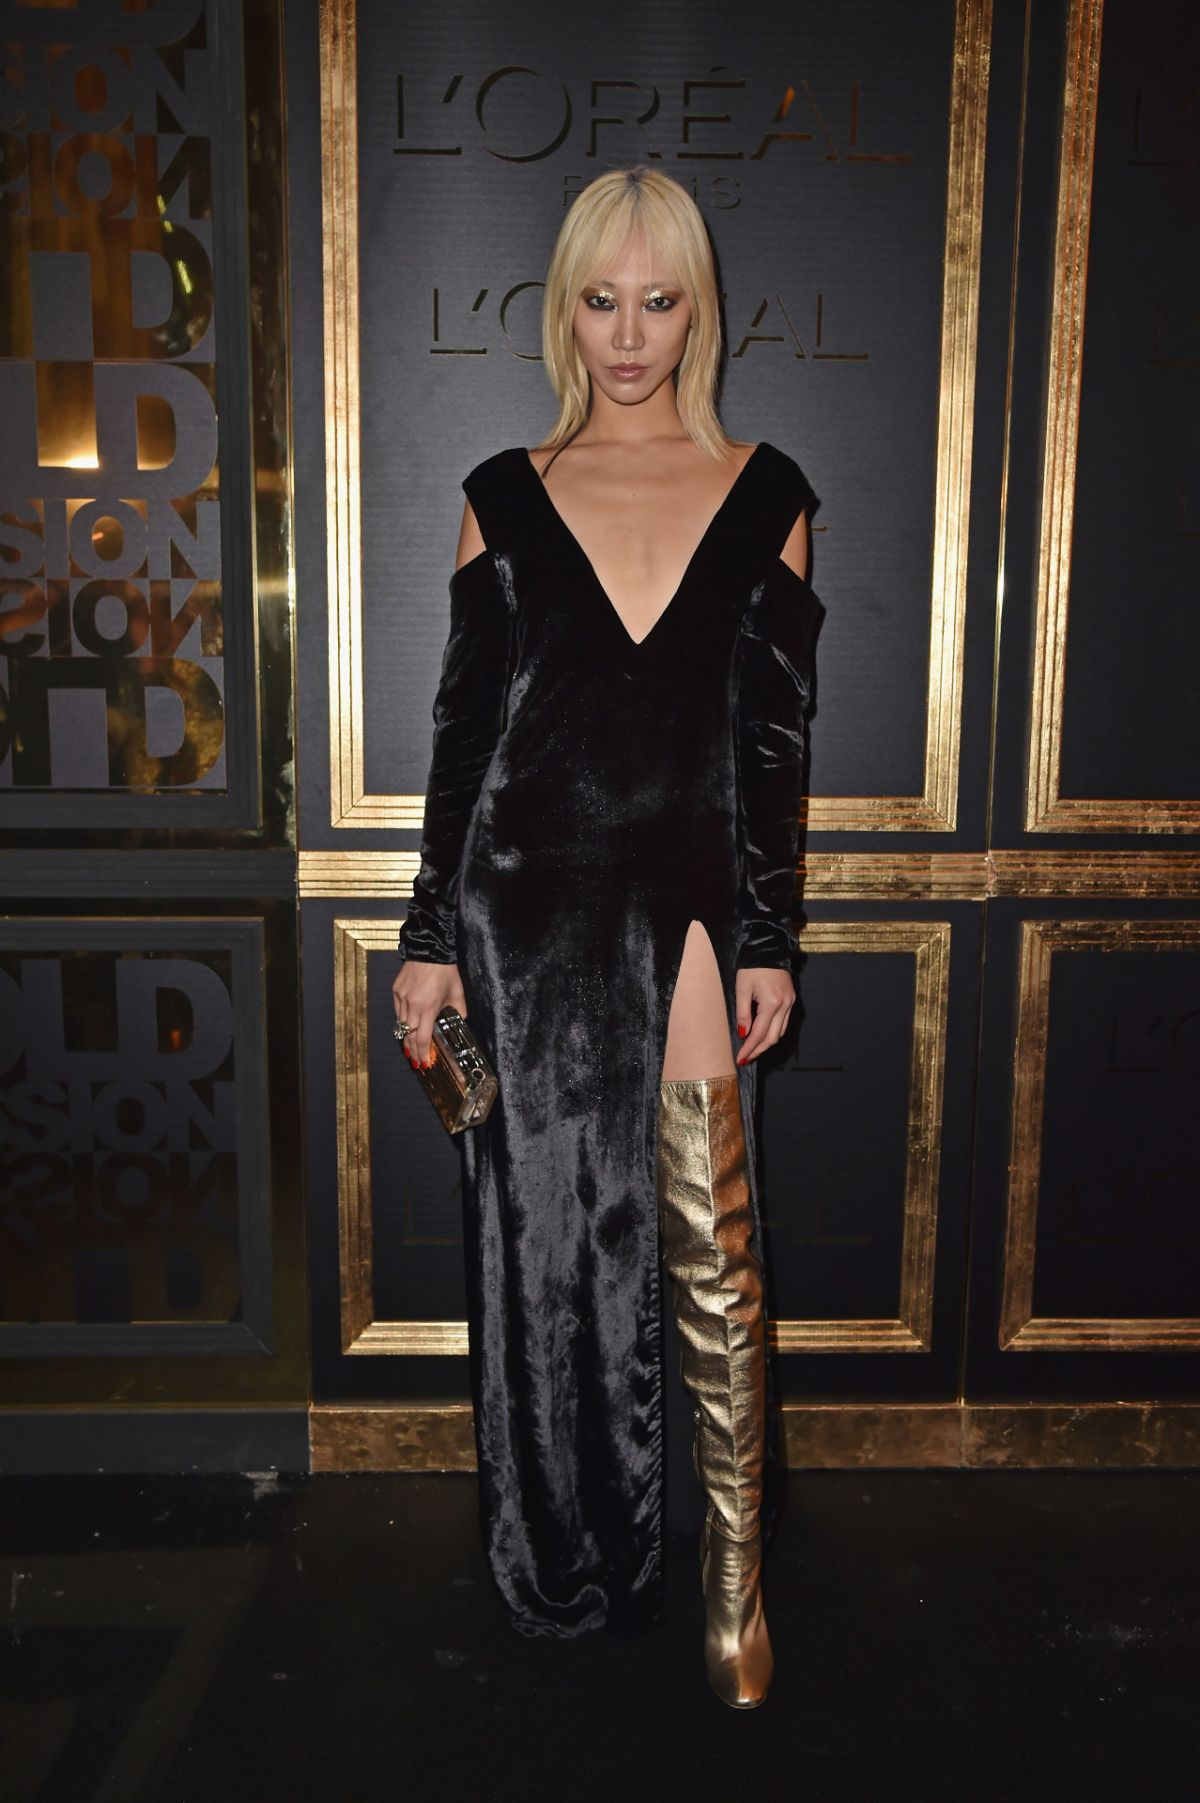 SOO JOO PARK at Gold Obsession Party at Paris Fashion Week 10/02/2016